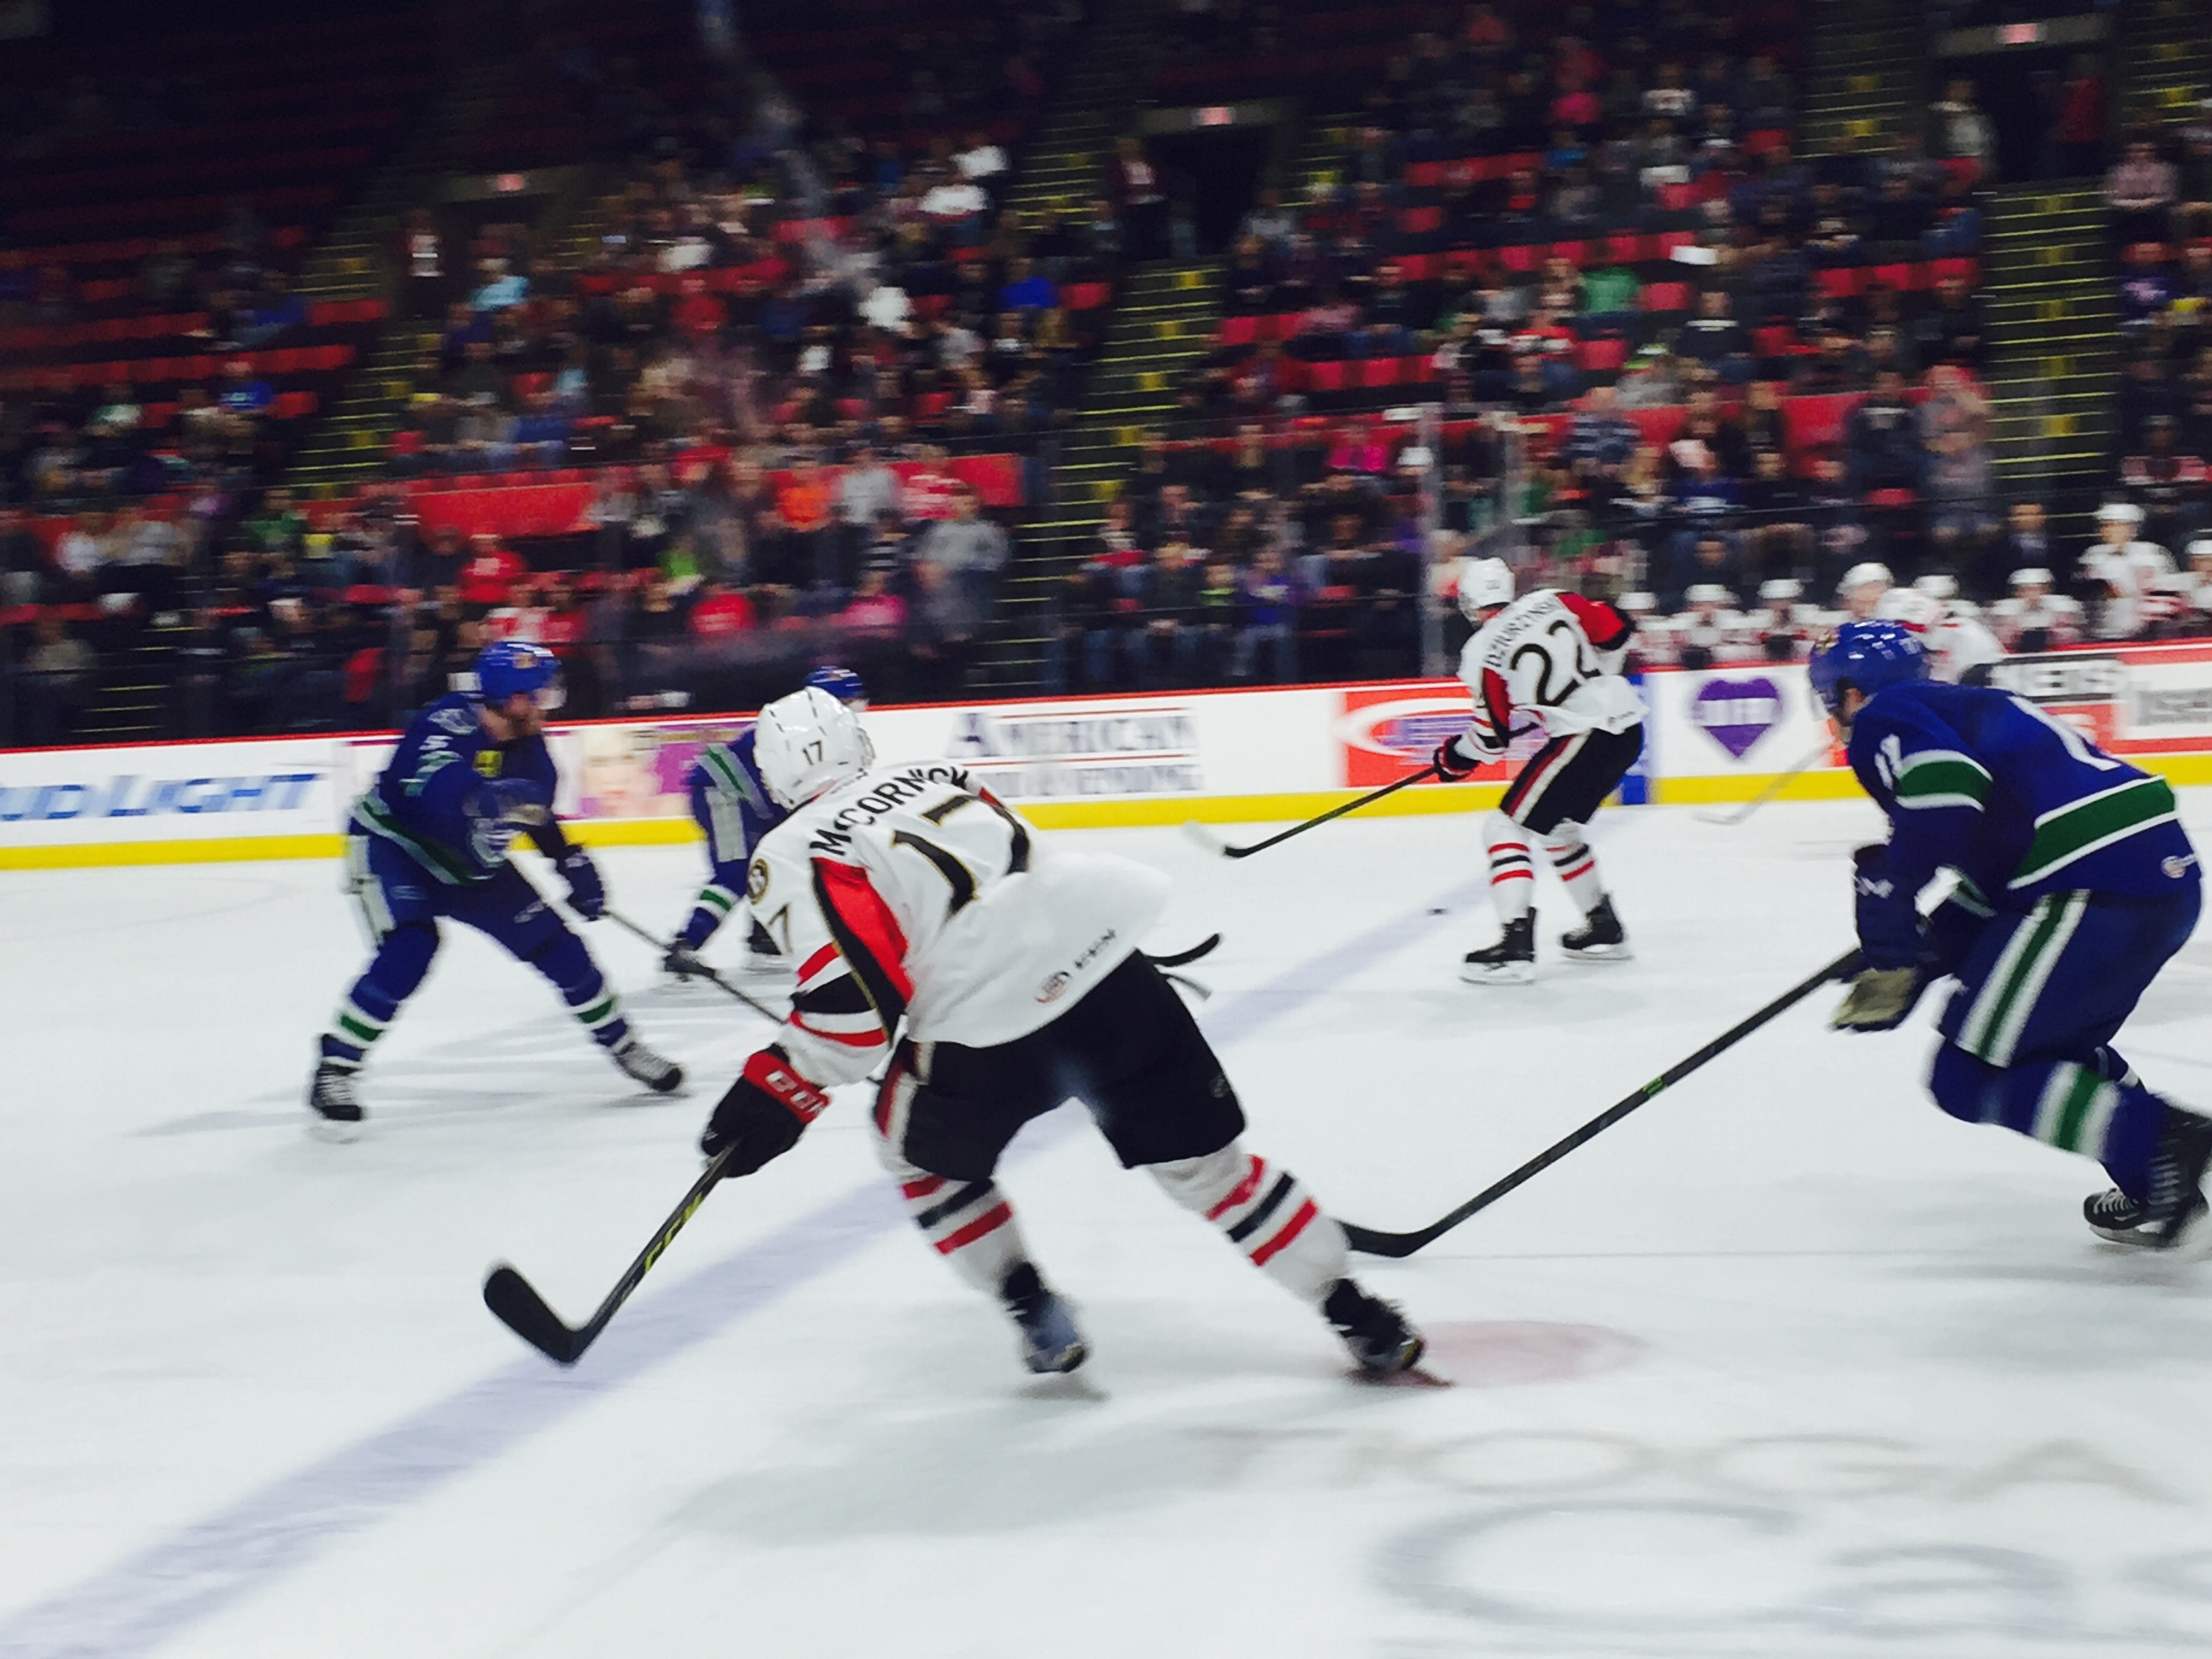 BSens forward's Max McCormick and David Dziurzynski in action with the Utica Comets